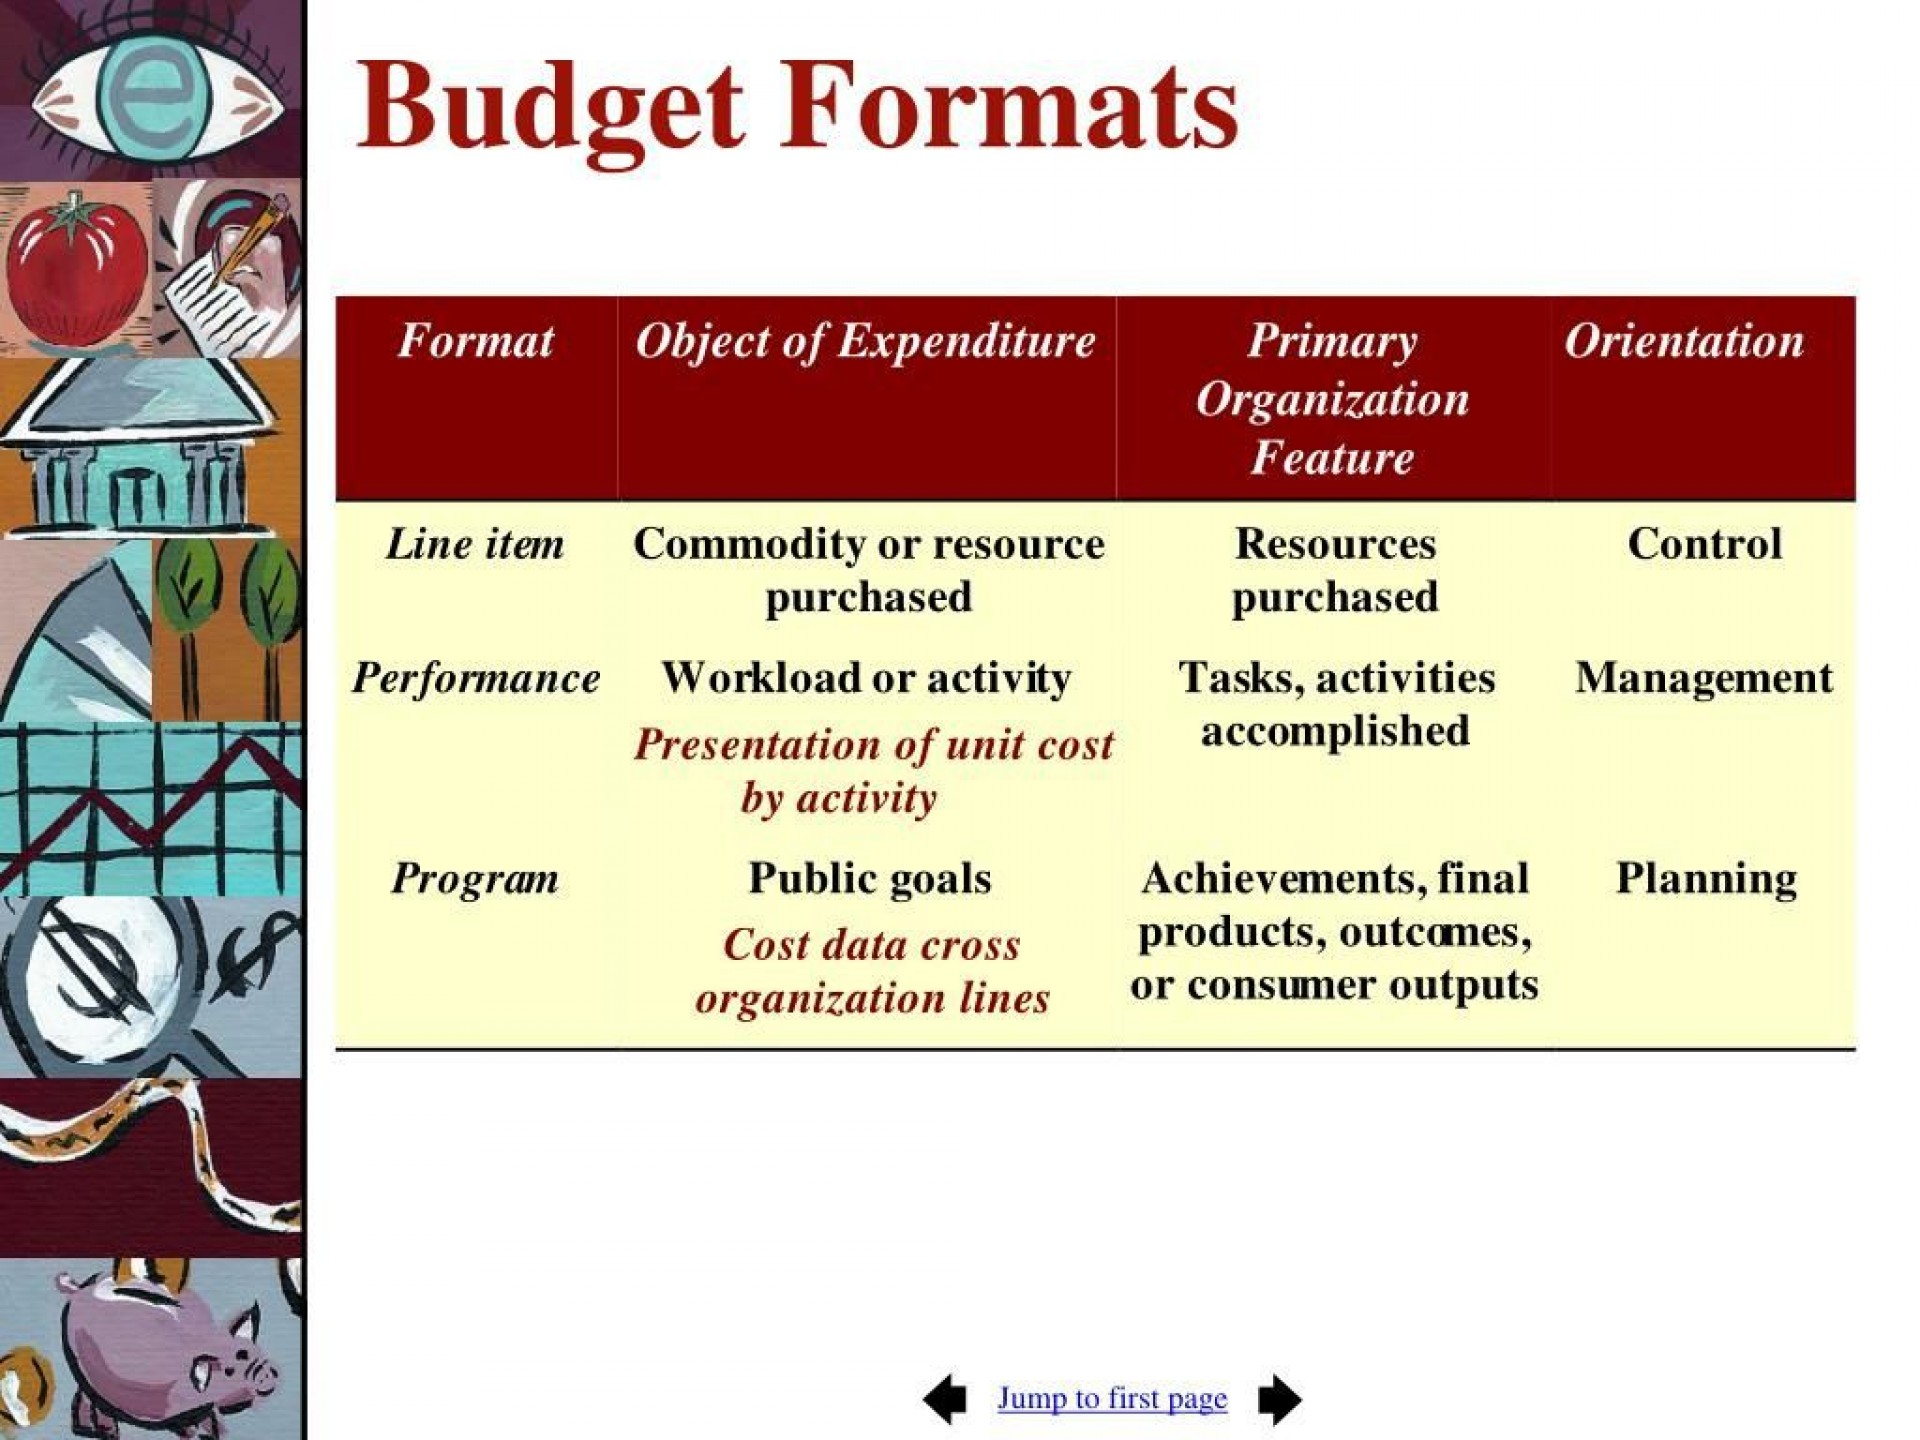 002 Surprising Line Item Budget Format Idea  Example Of Template Film Meaning With1920